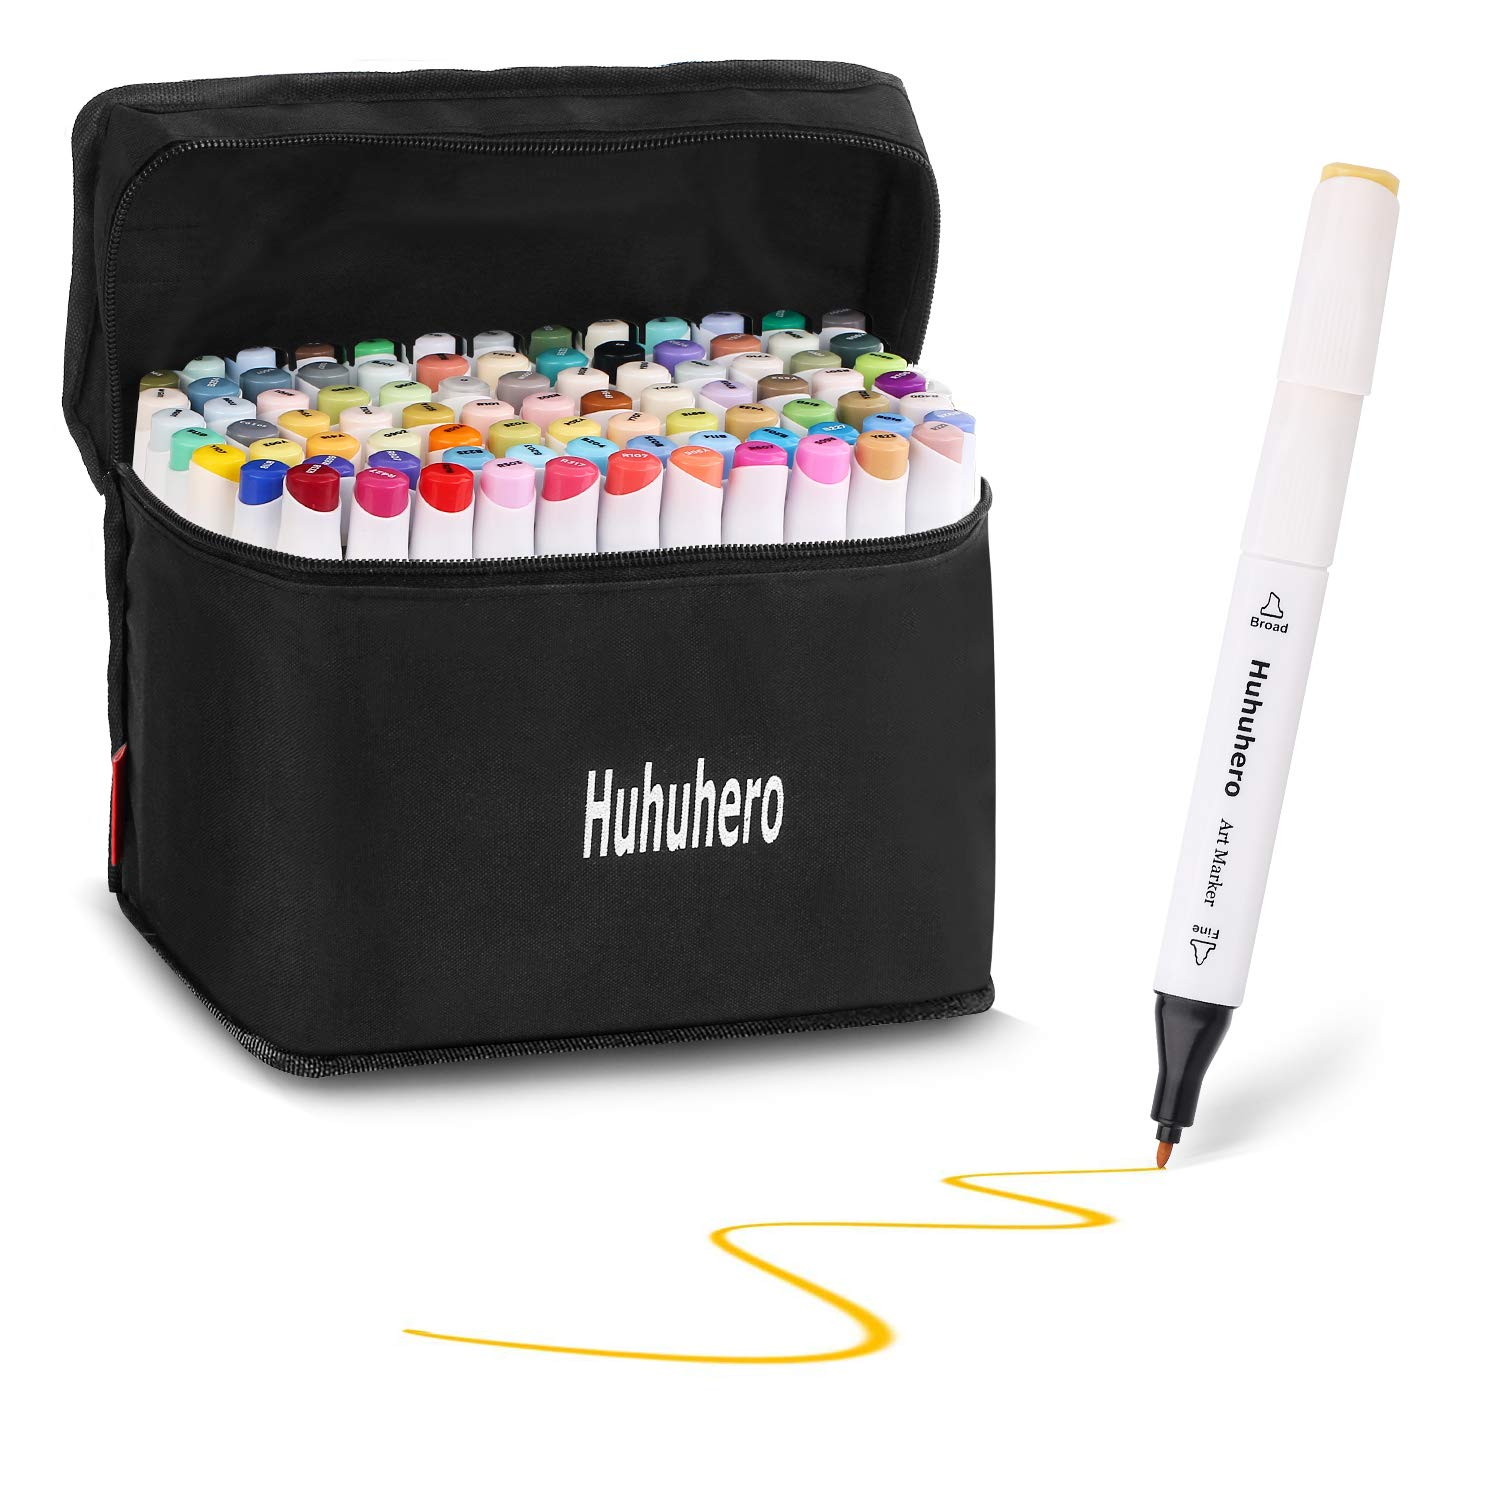 88 Colors Art Markers, Dual Tip Permanent Alcohol Based Markers Art Pens Set with Carrying Case for Adults Coloring Drawing Sketching Illustration Underlining Highlighters Card Making.